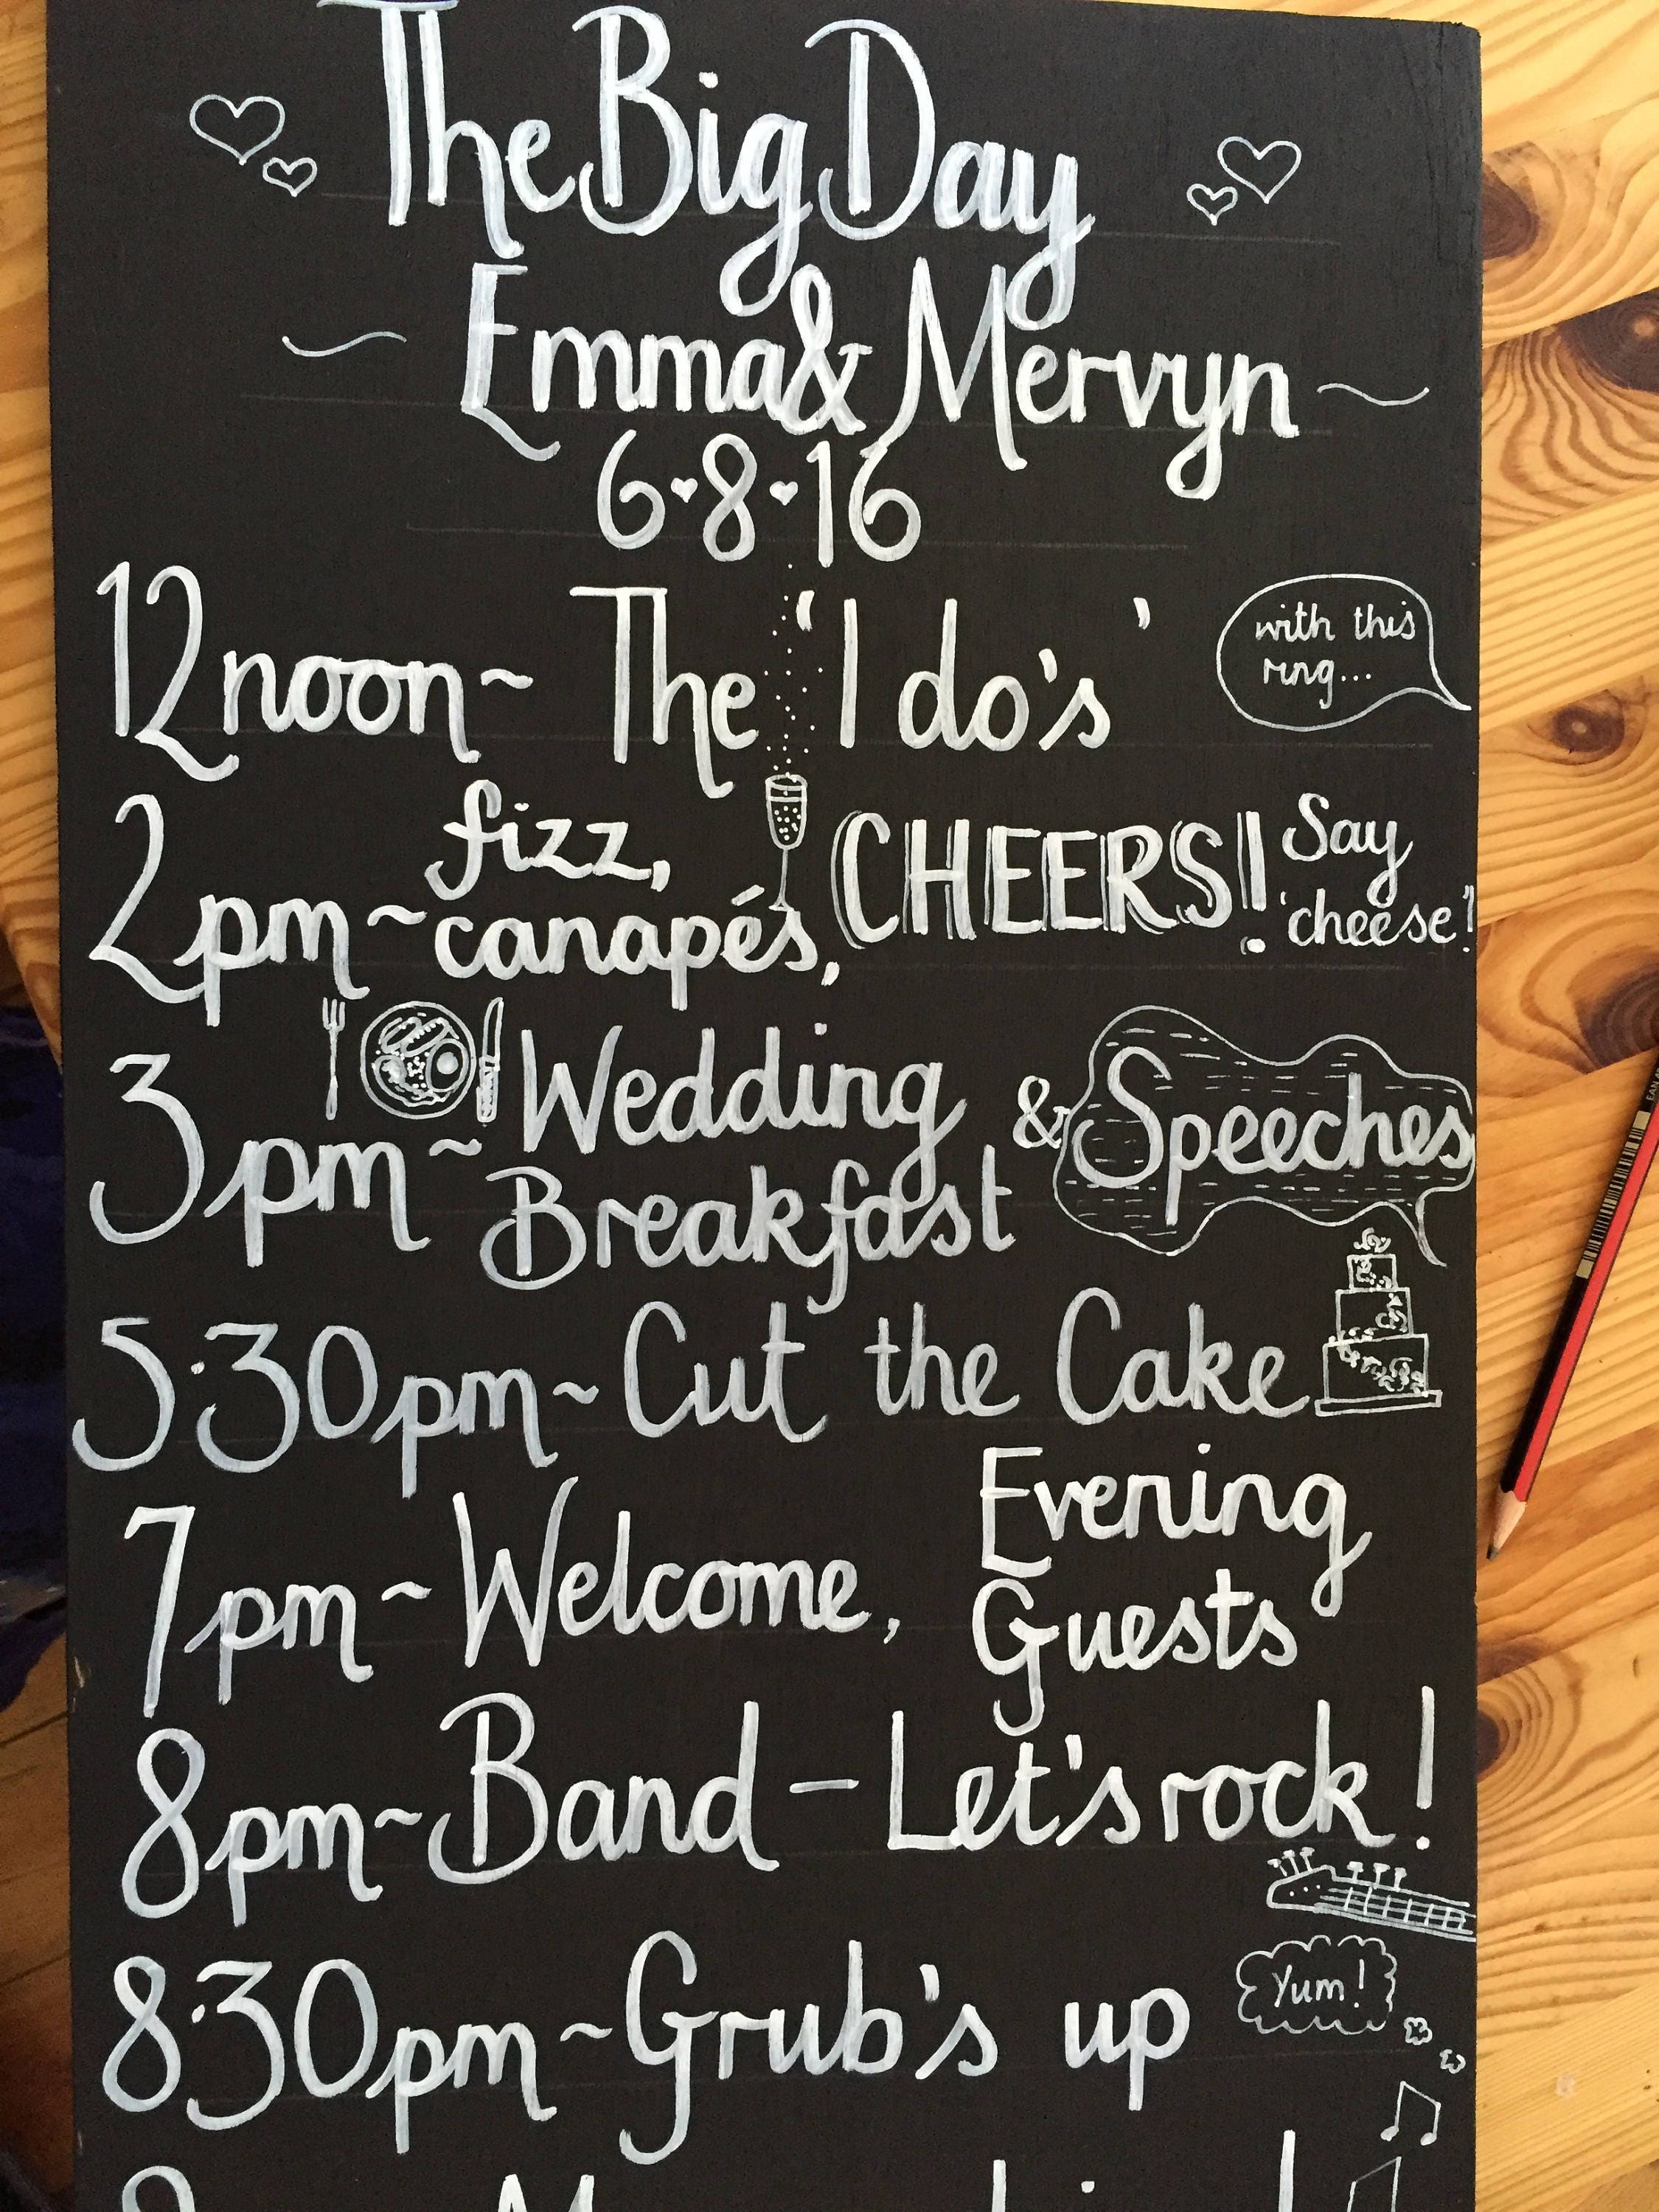 Wedding Order of the Day Blackboard Chalkboard 90x40 handwritten  handlettered venue decor decoration sign unique quirky personalised